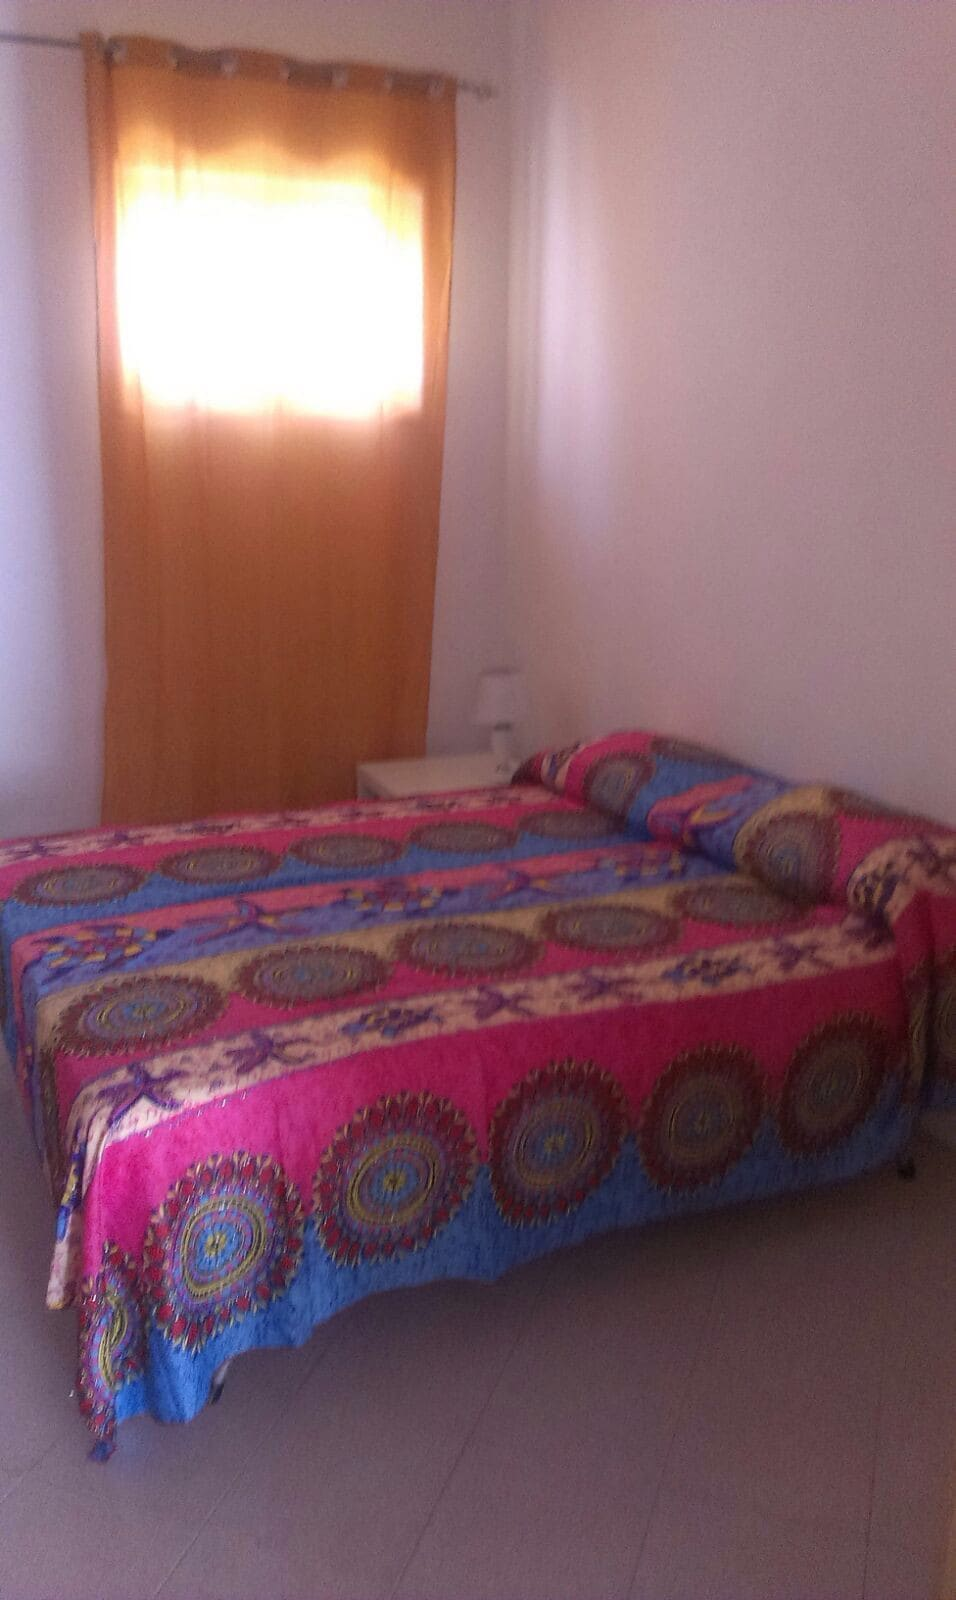 Rental townhouse in Agrigento